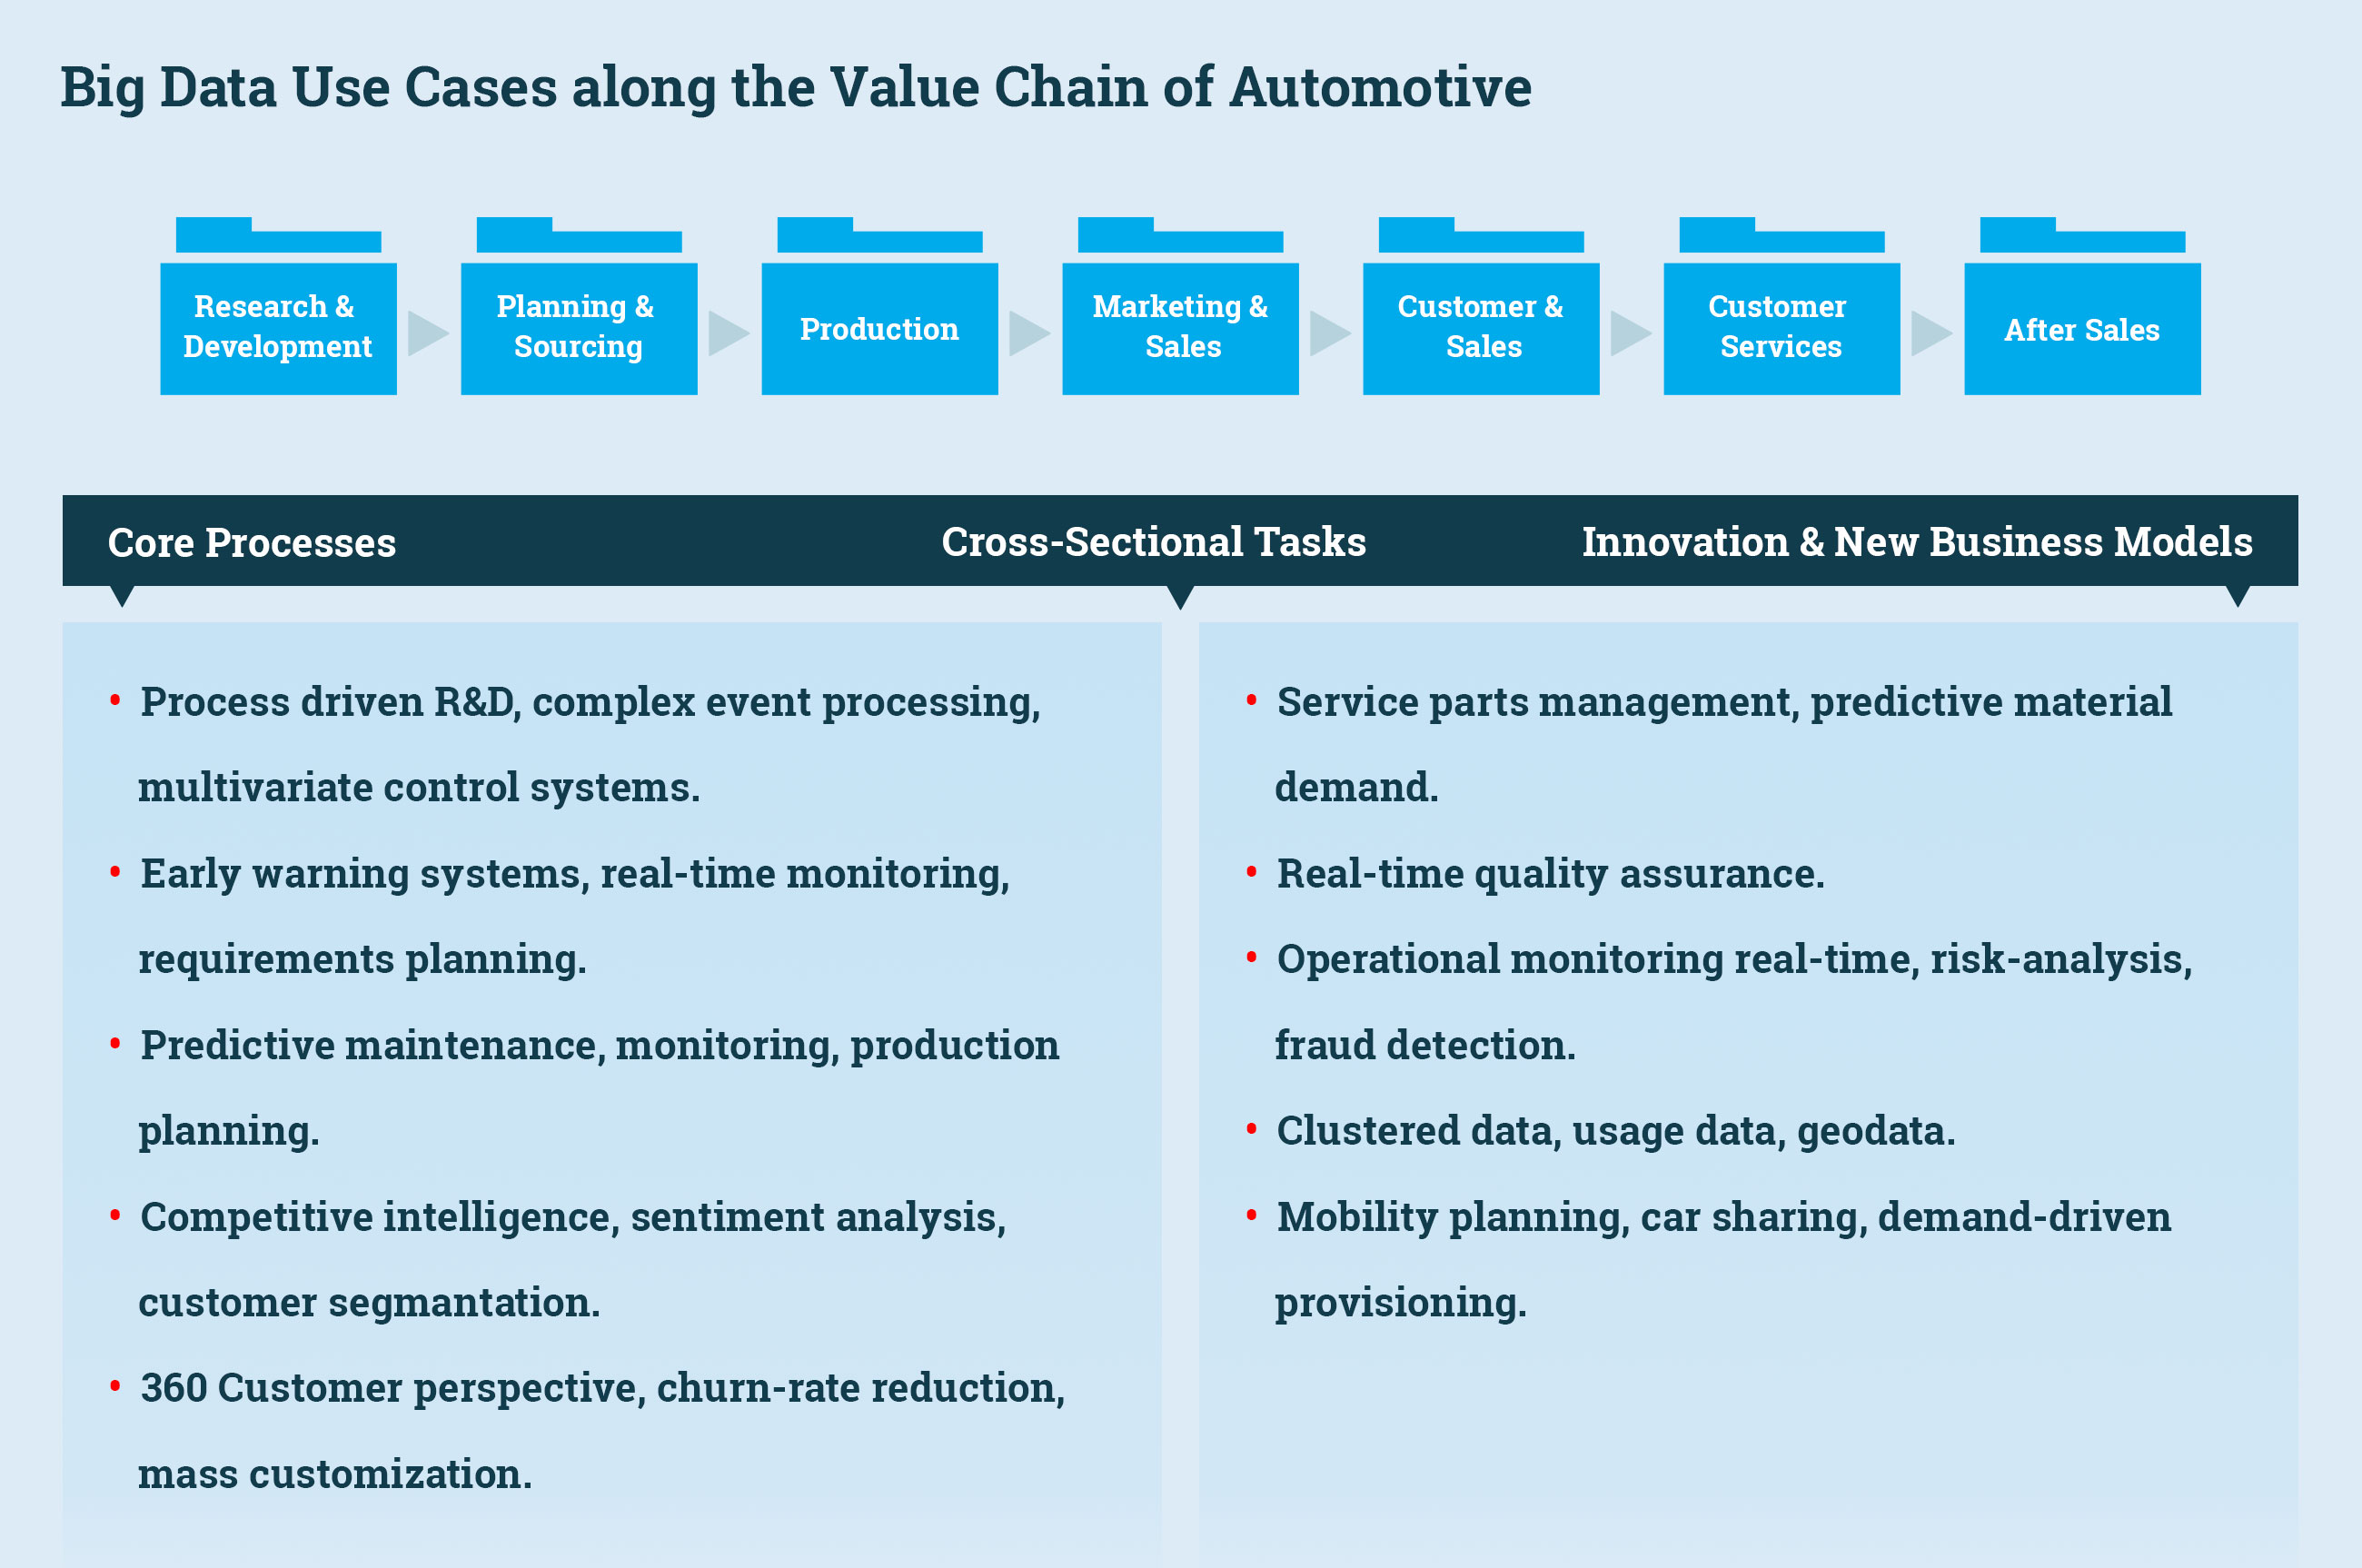 Big Data Analytics For Automotive Industry